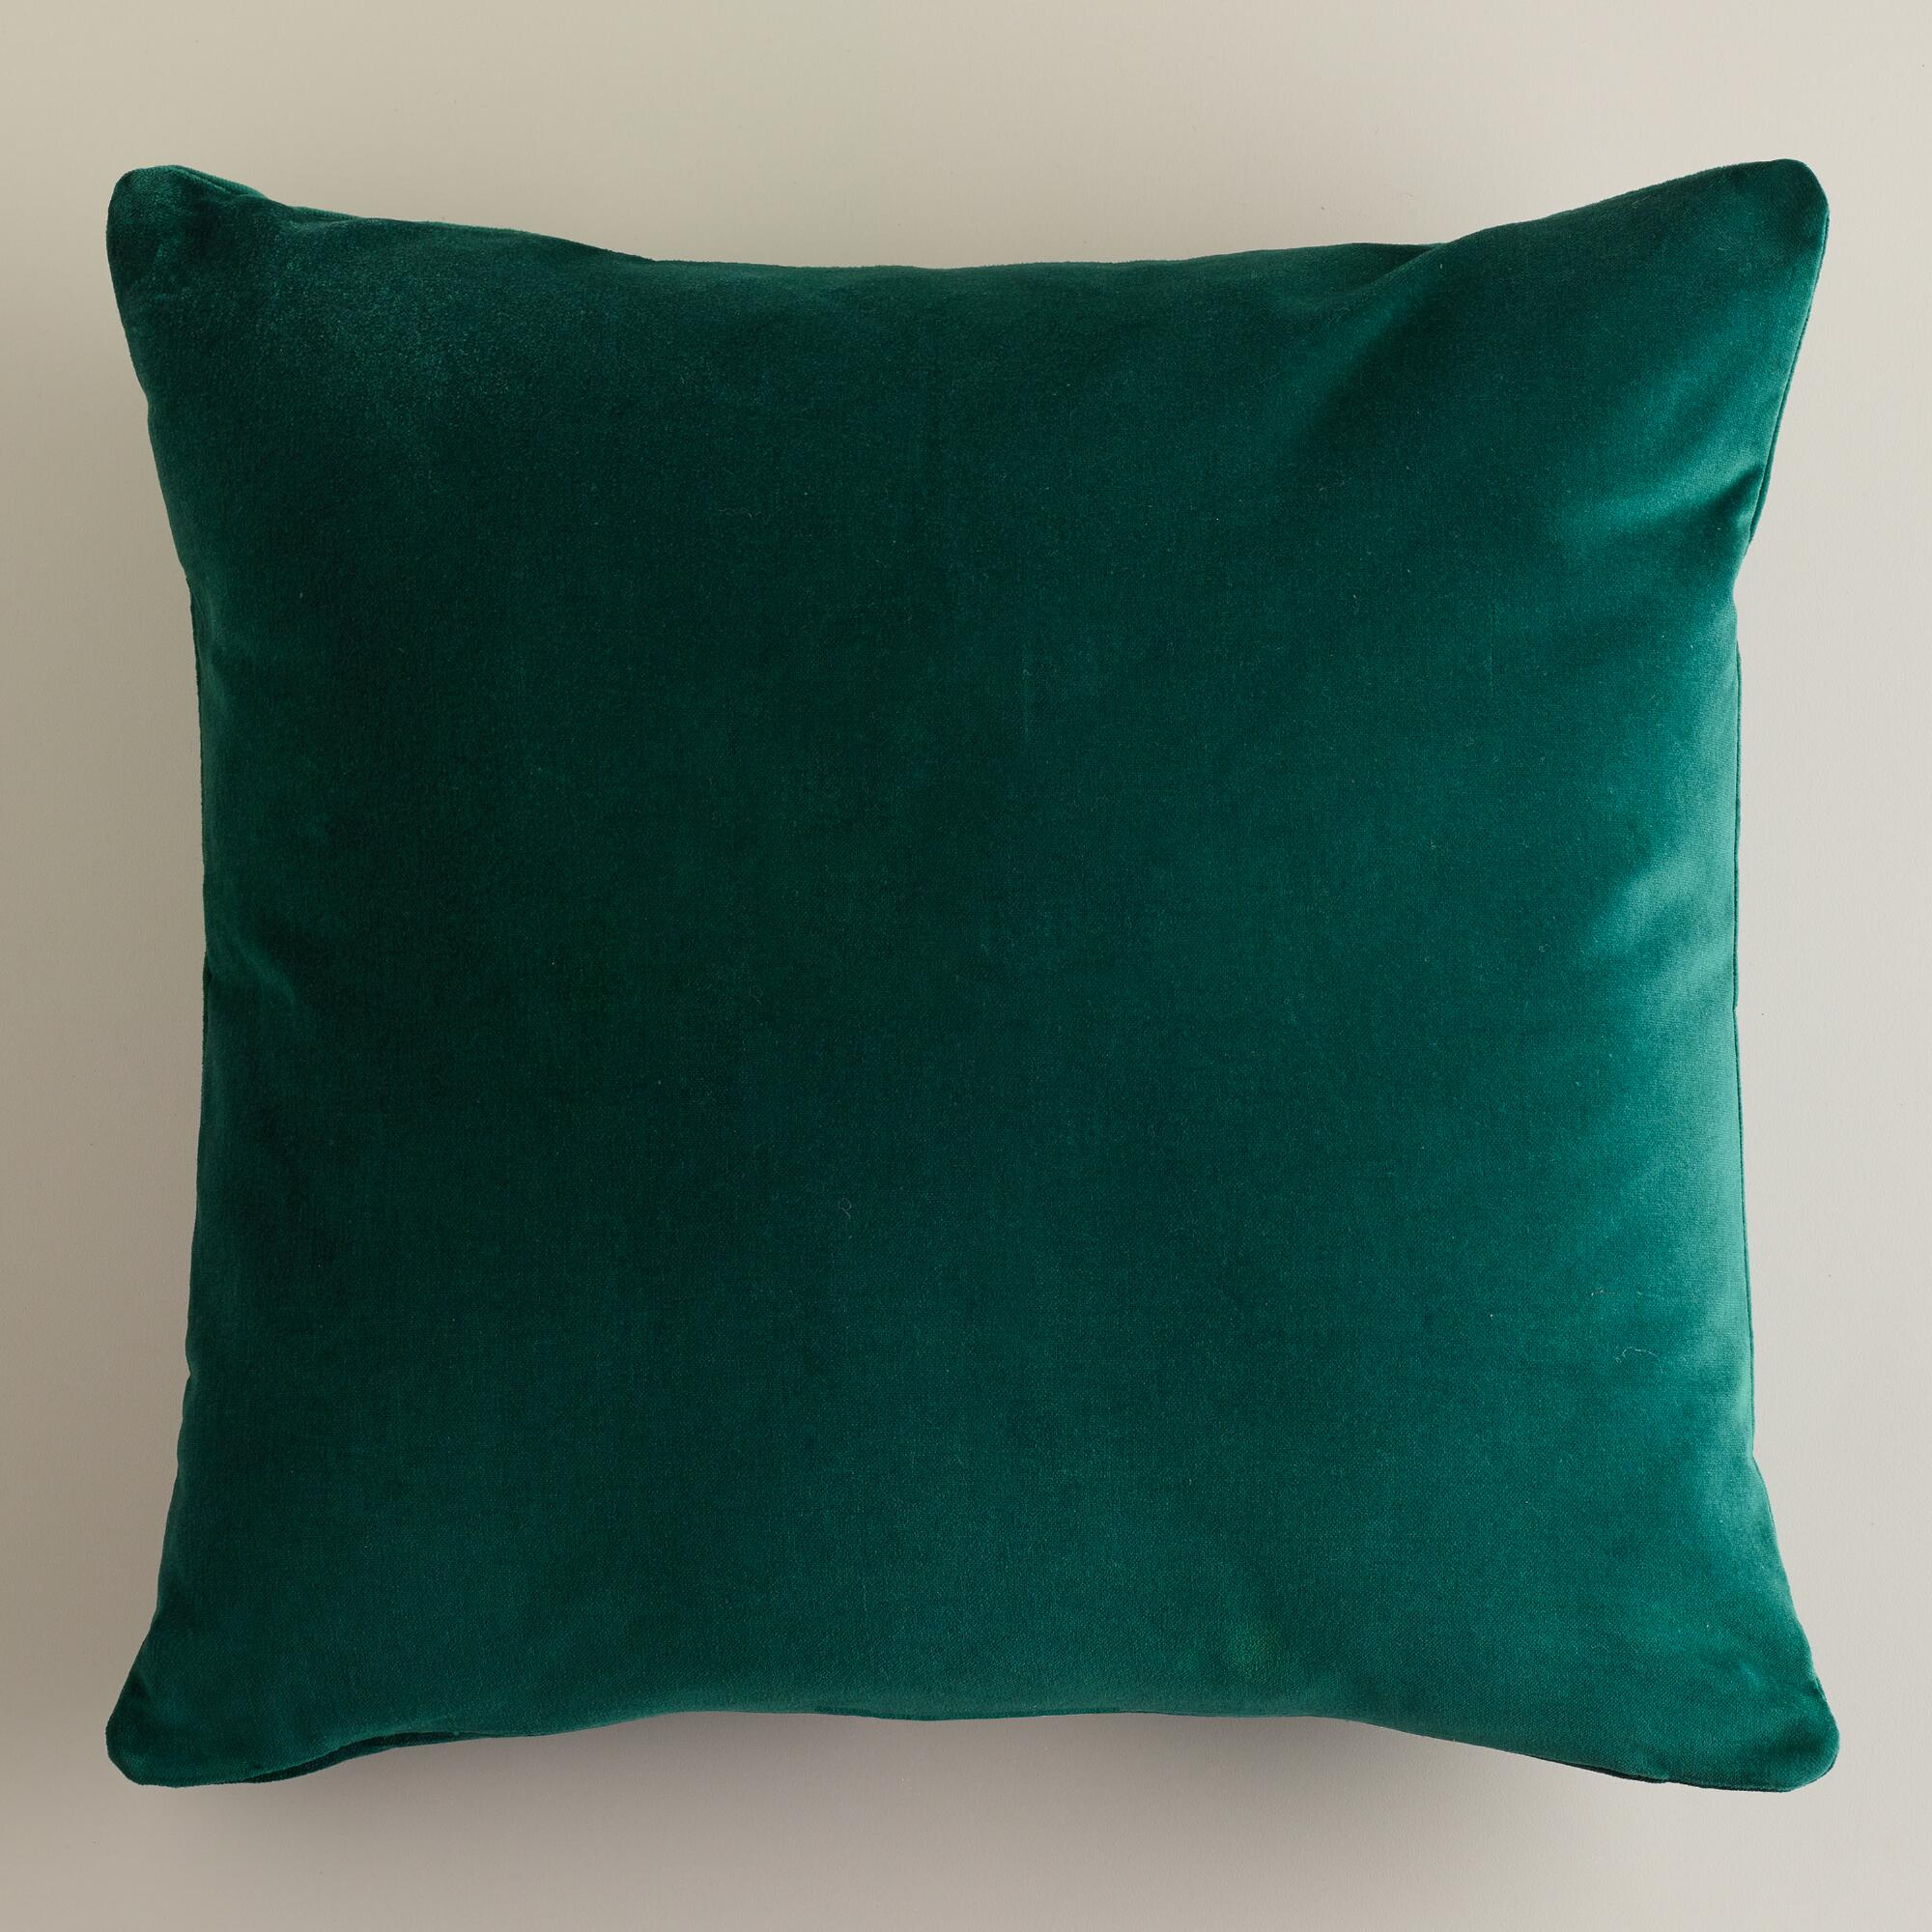 Throw Pillows Velvet : Dark Green Velvet Throw Pillows World Market